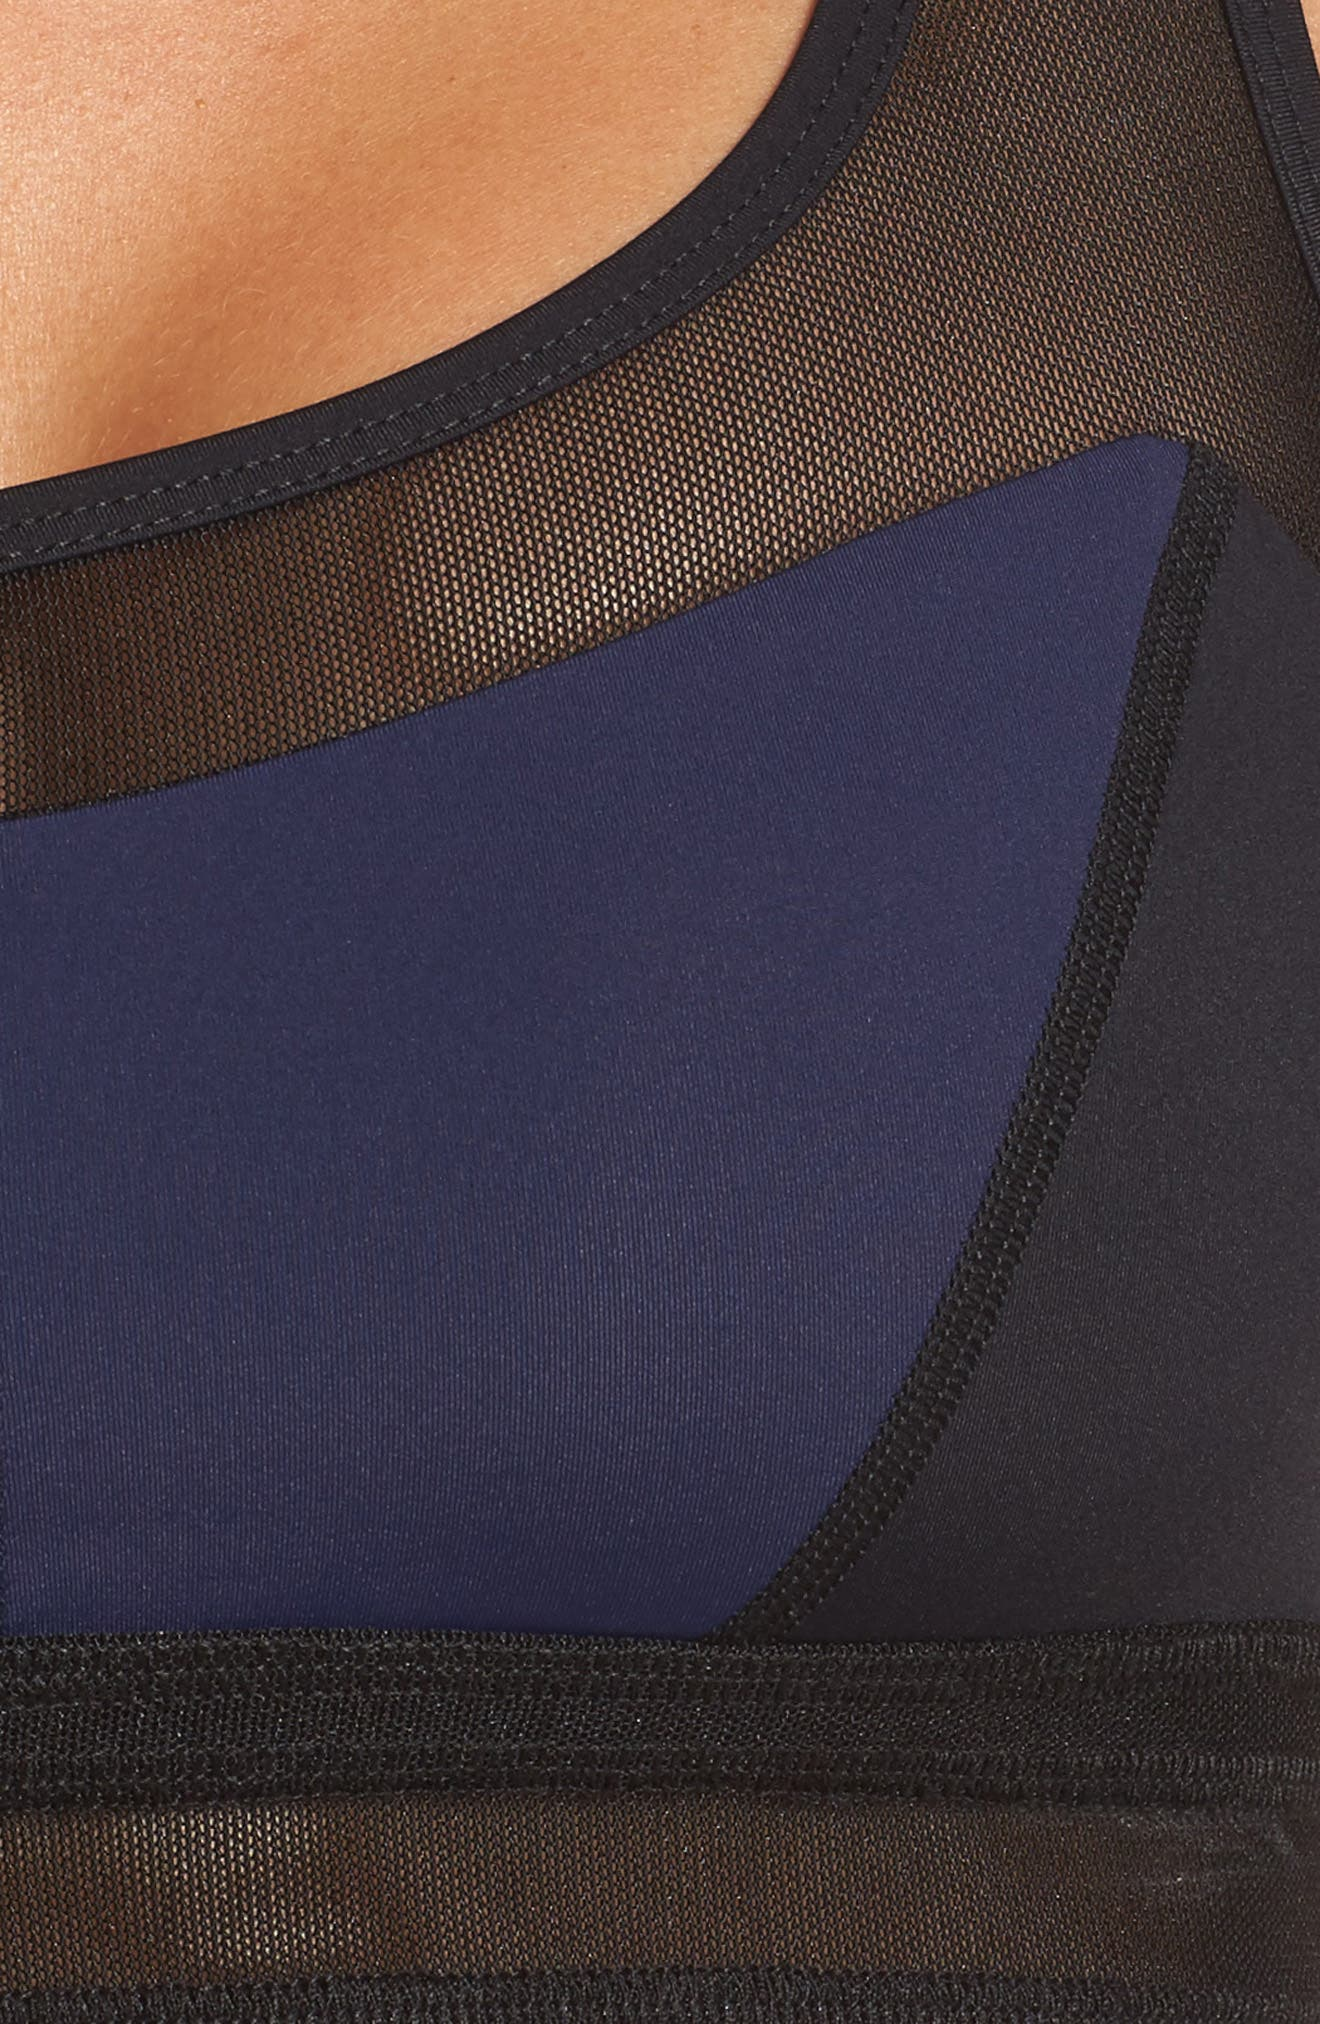 BoomBoom Athletica Mesh Sports Bra,                             Alternate thumbnail 4, color,                             Navy/ Black